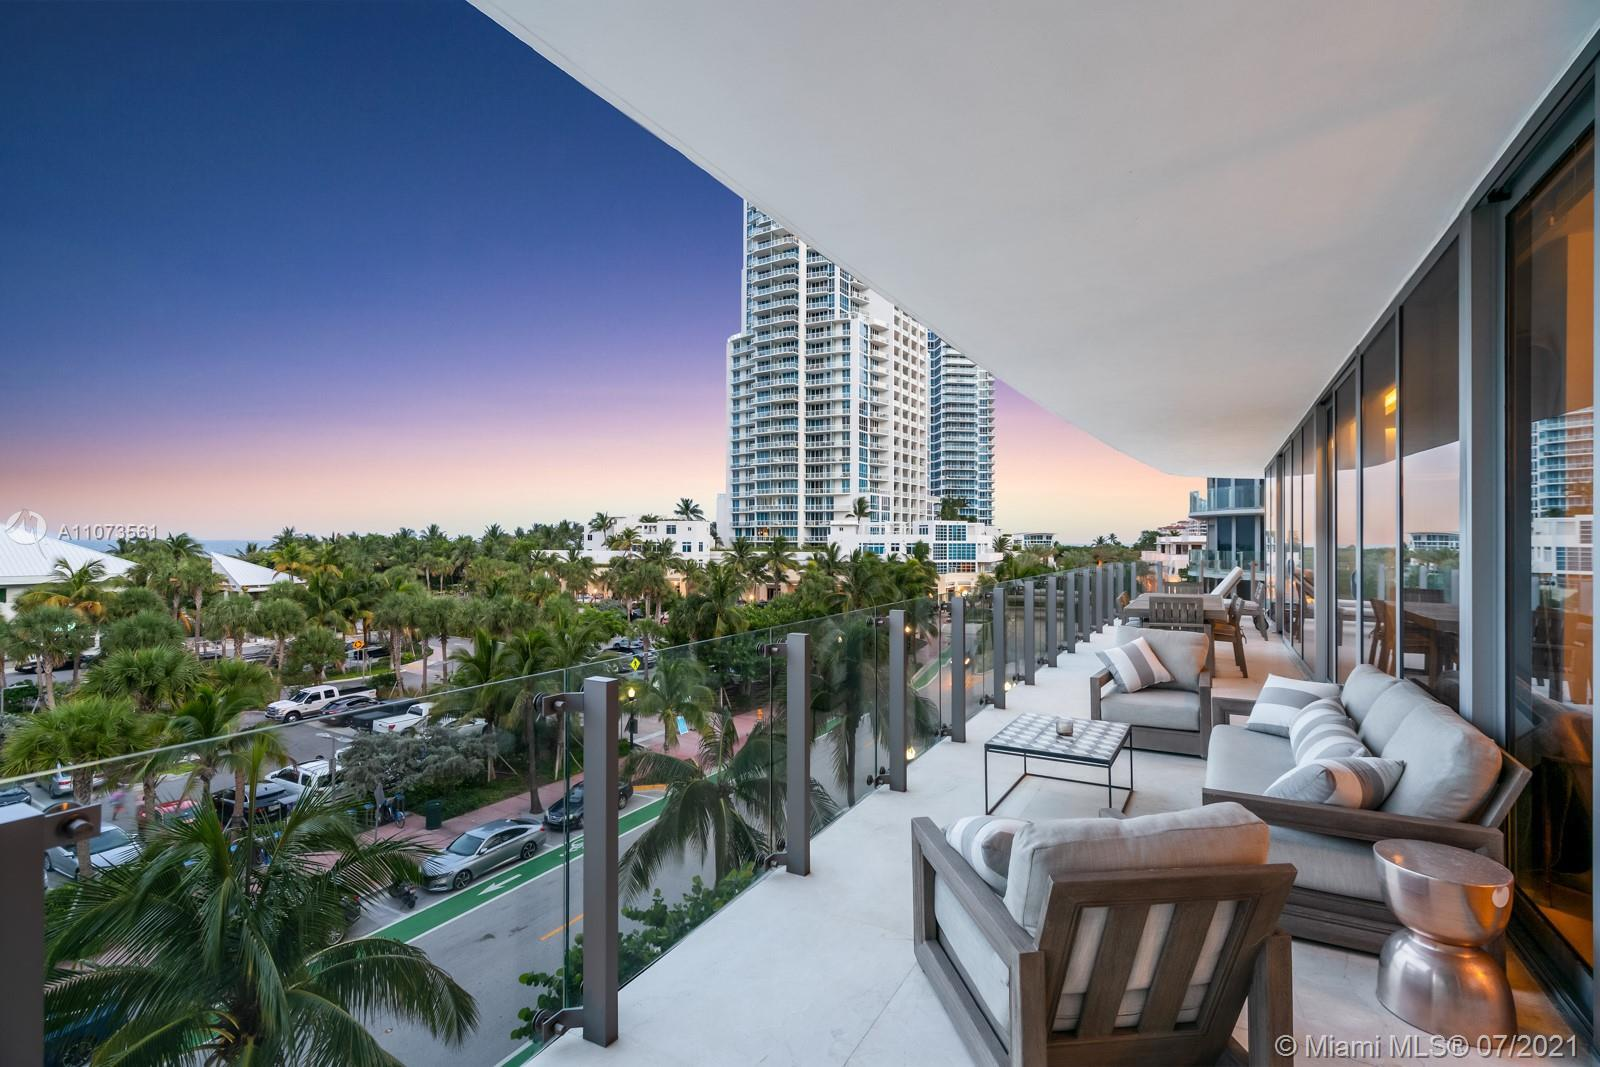 Enjoy private South of Fifth living in this luxury 4 bd 4.5 ba condo with direct ocean views. This 3